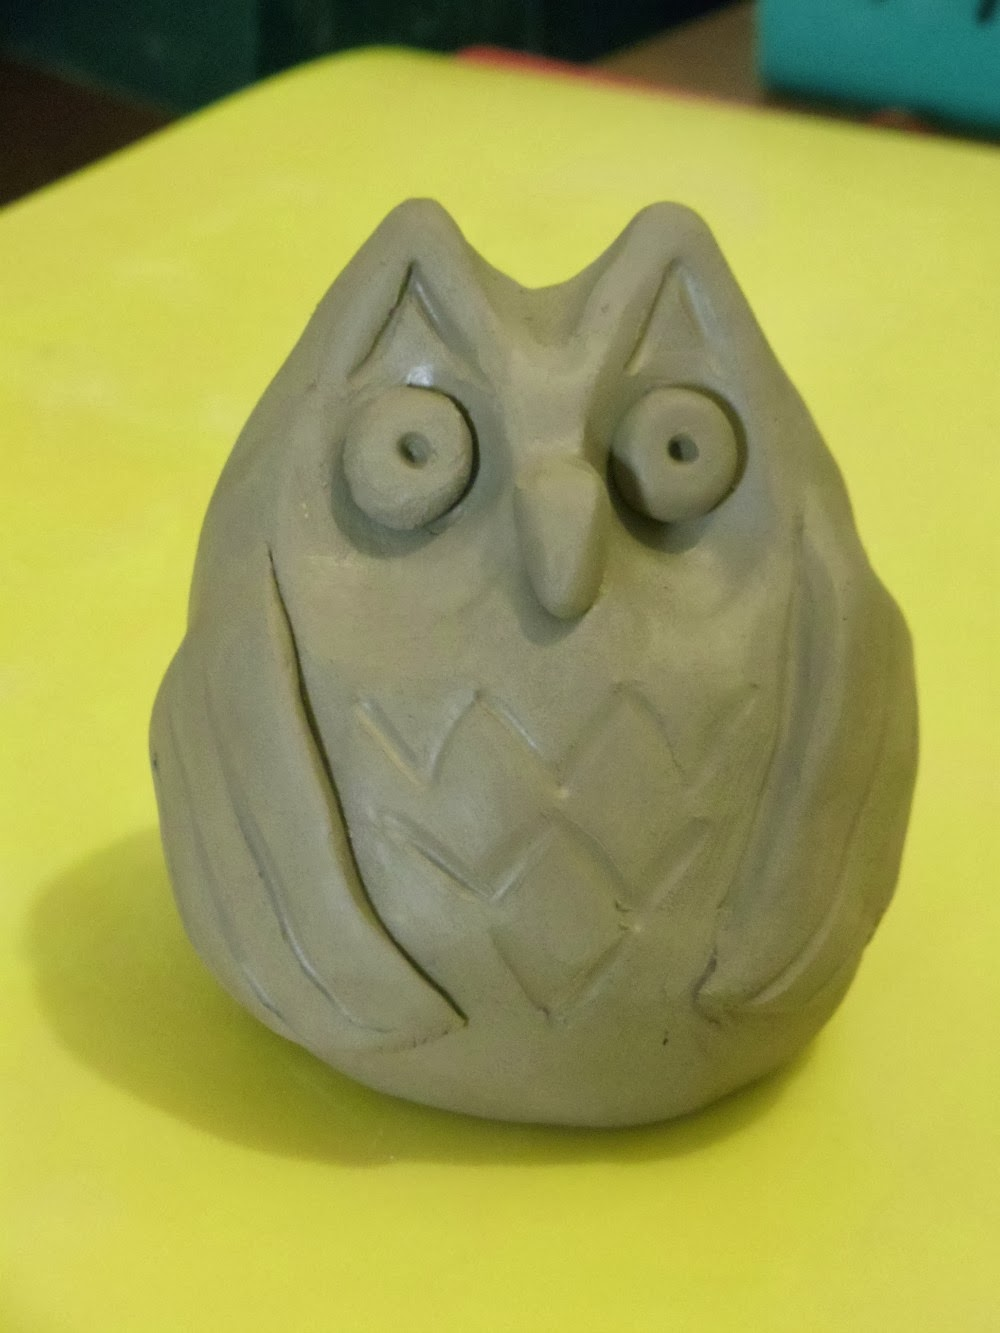 How to make a clay owl